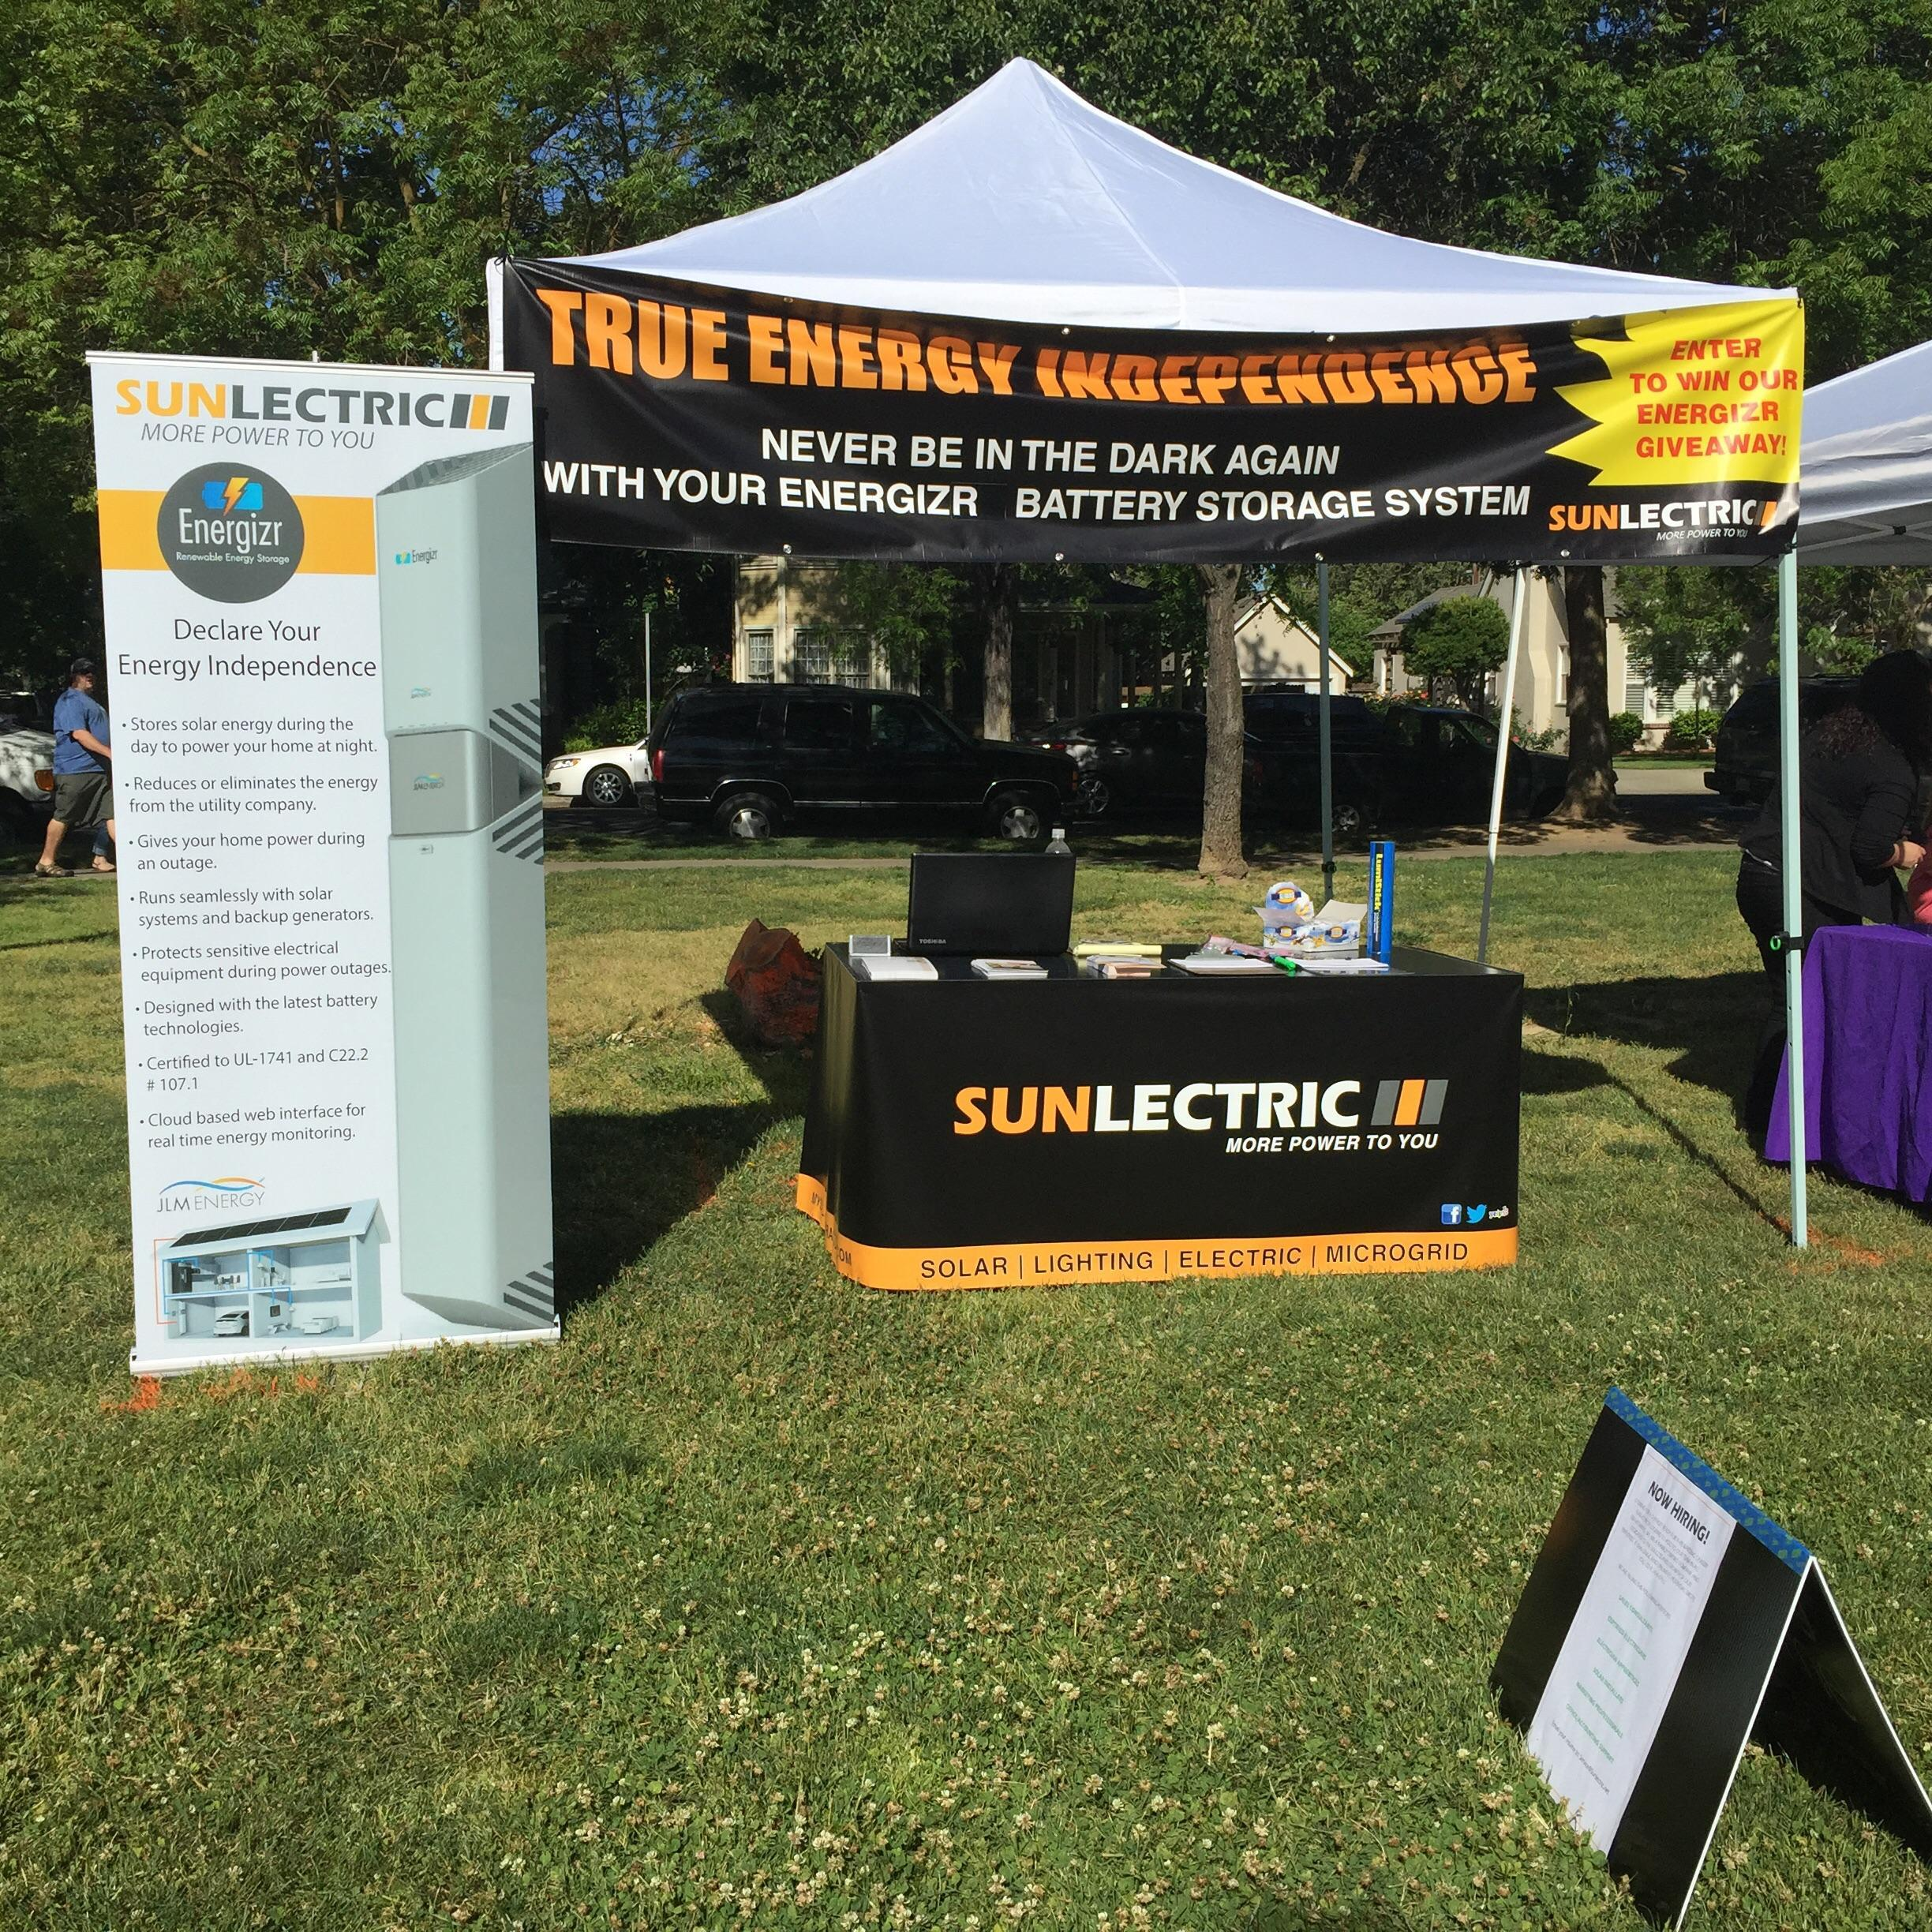 Sunlectric - ad image